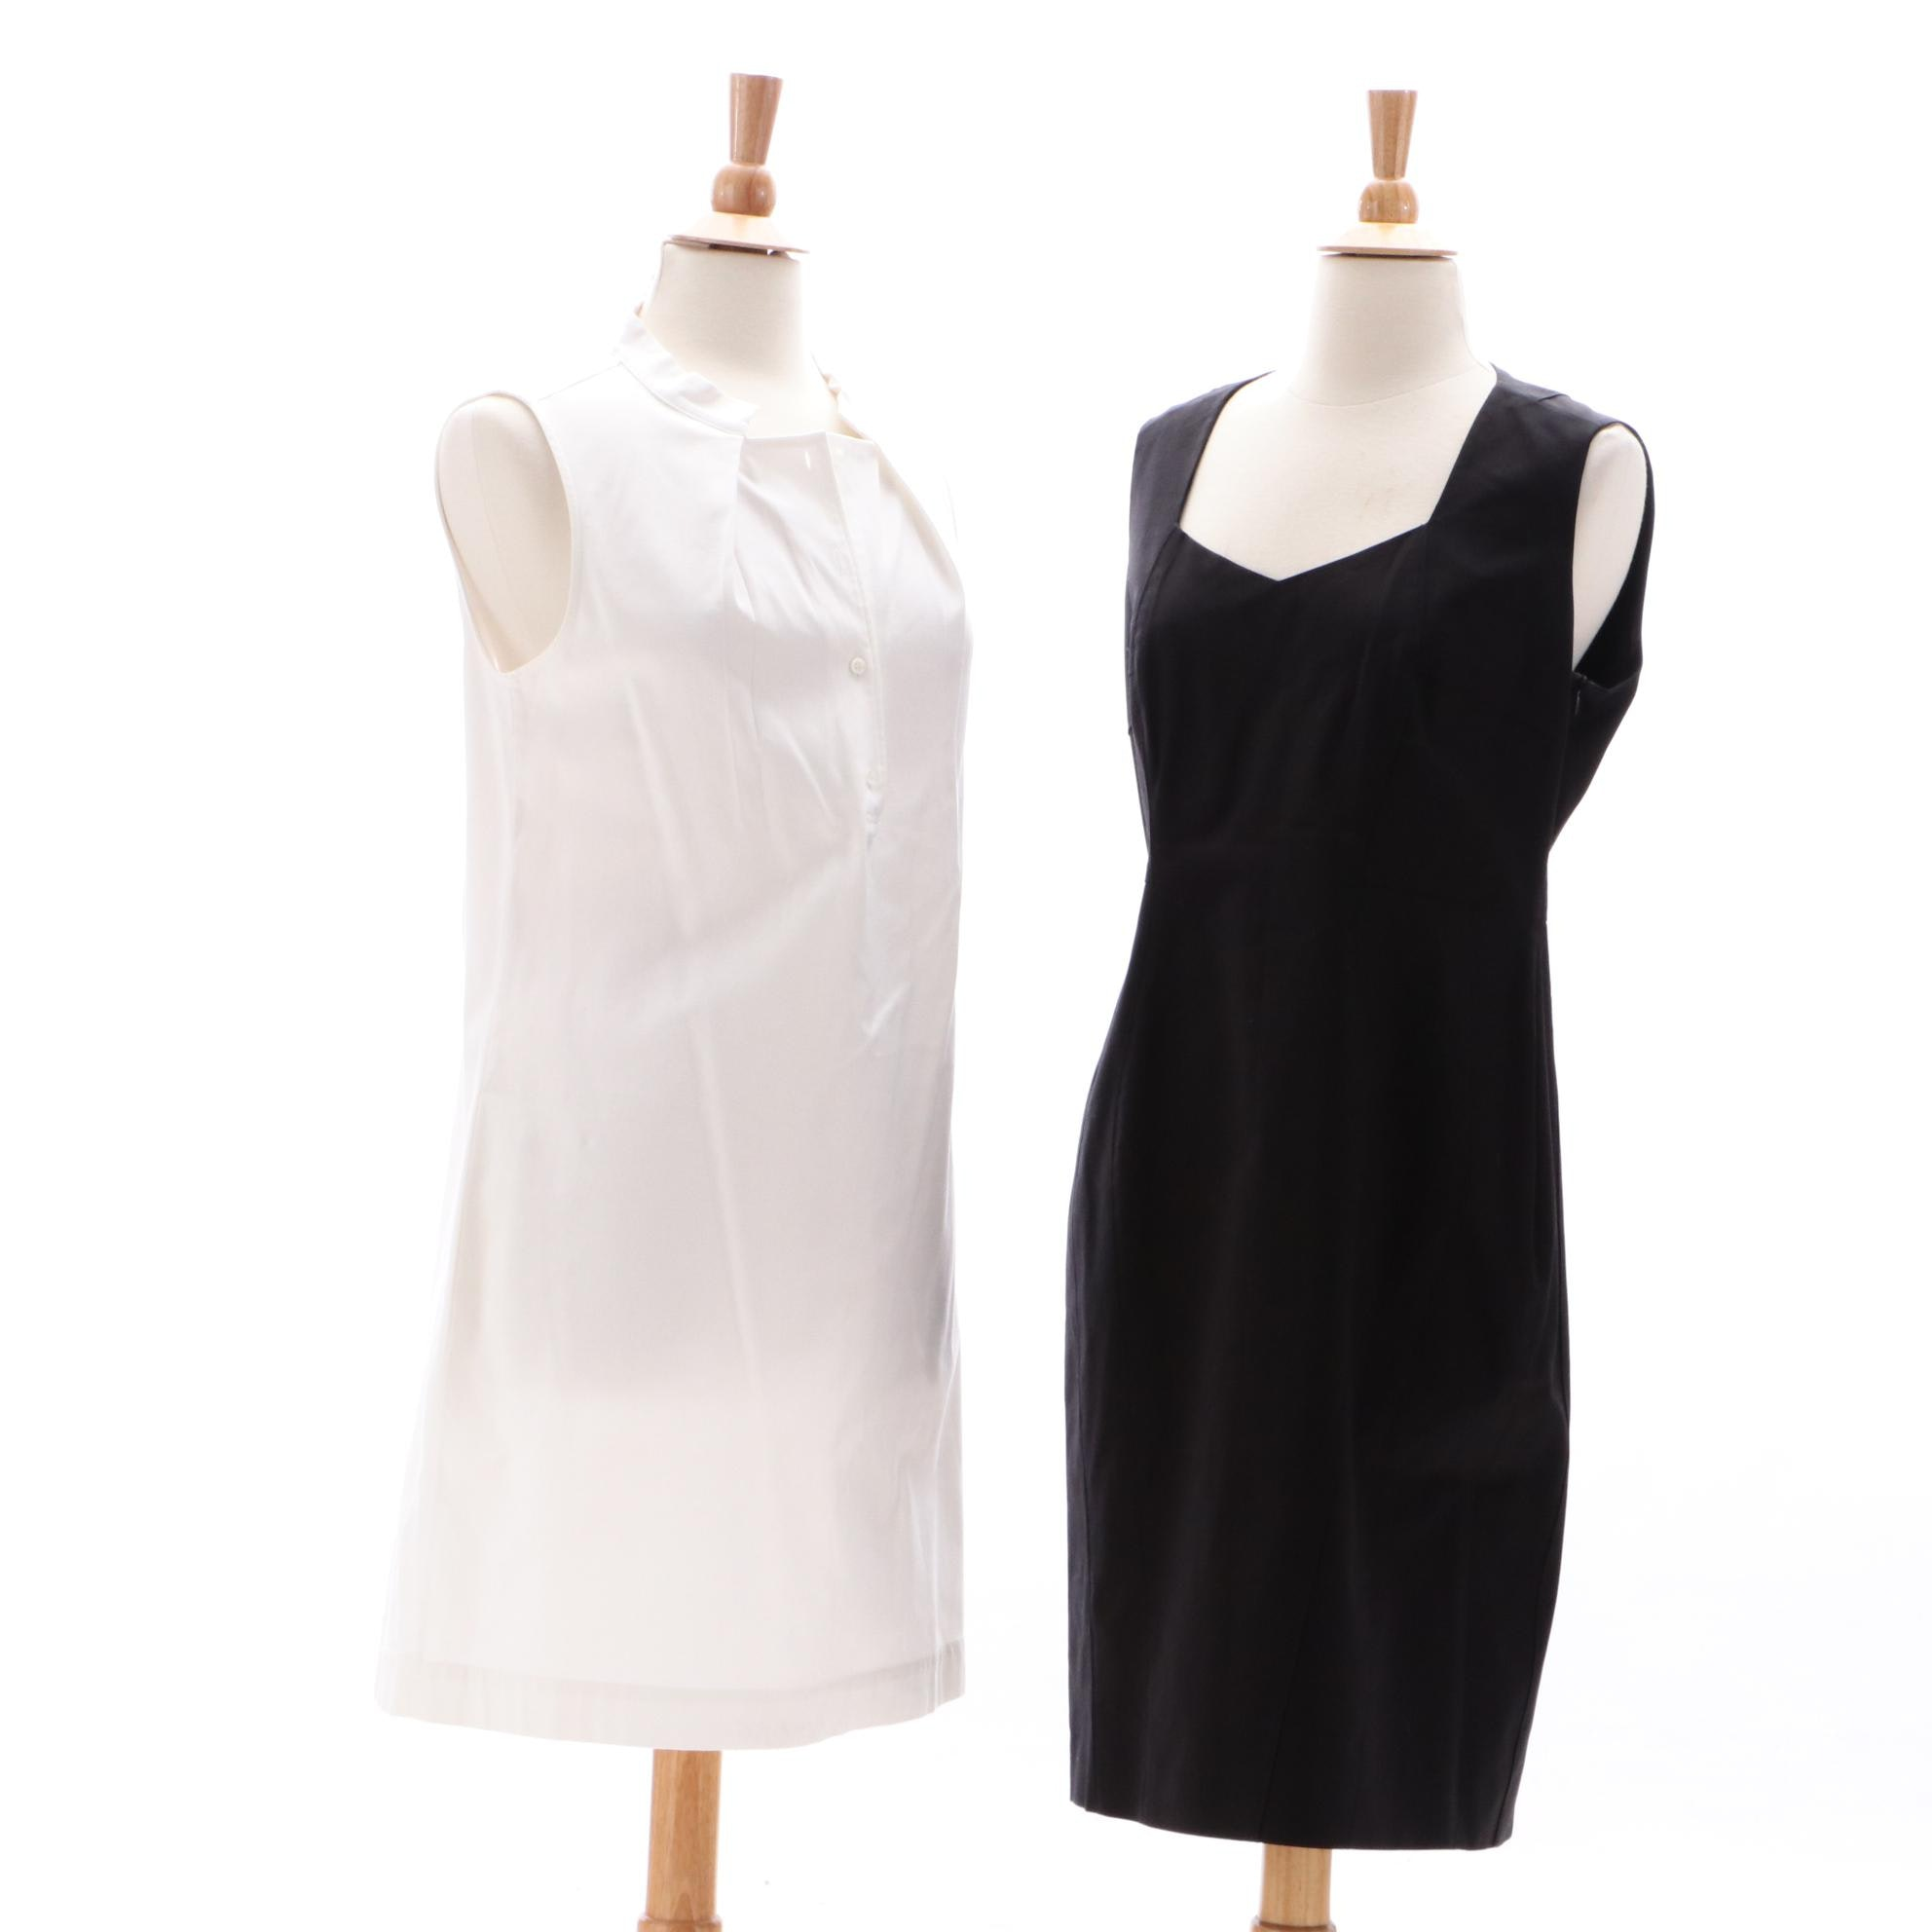 Piazza Sempione Sleeveless Dresses in Black and White